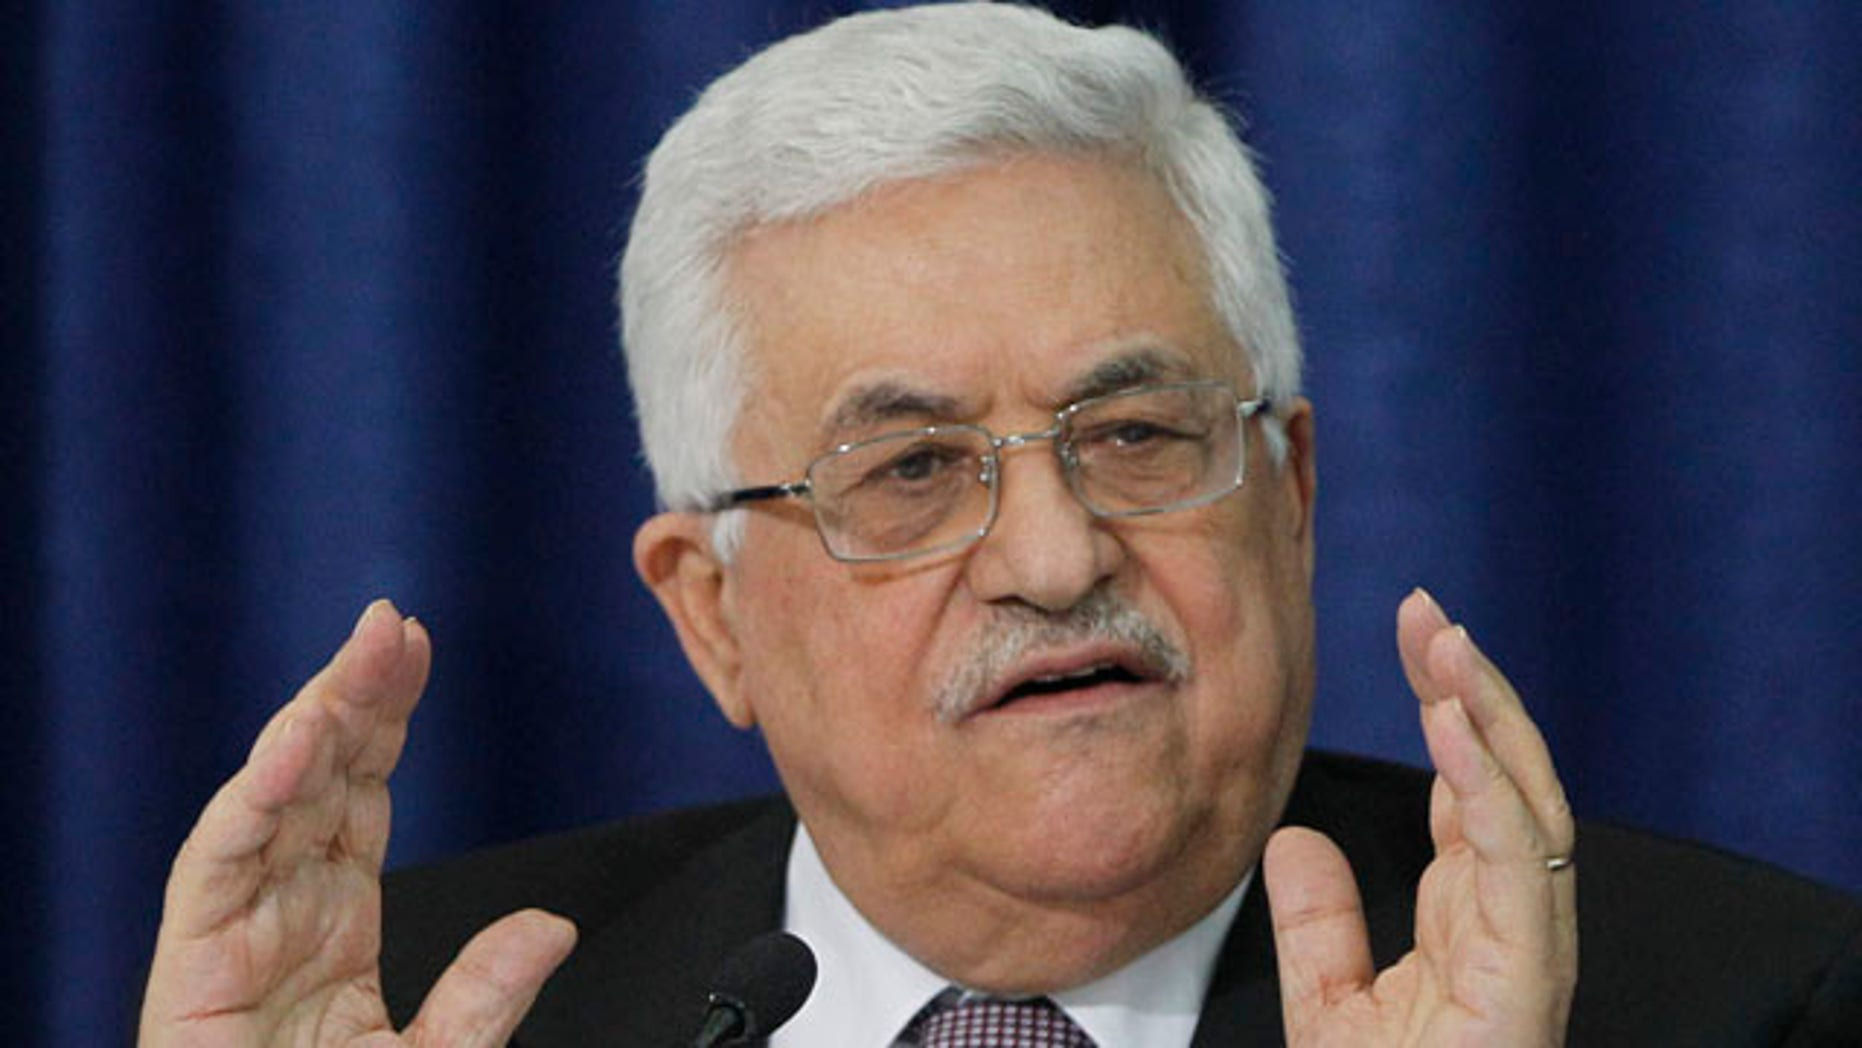 April 28: Palestinian President Mahmoud Abbas gestures as he speaks during a press conference with members of the Israeli Peace Initiative in Ramallah.